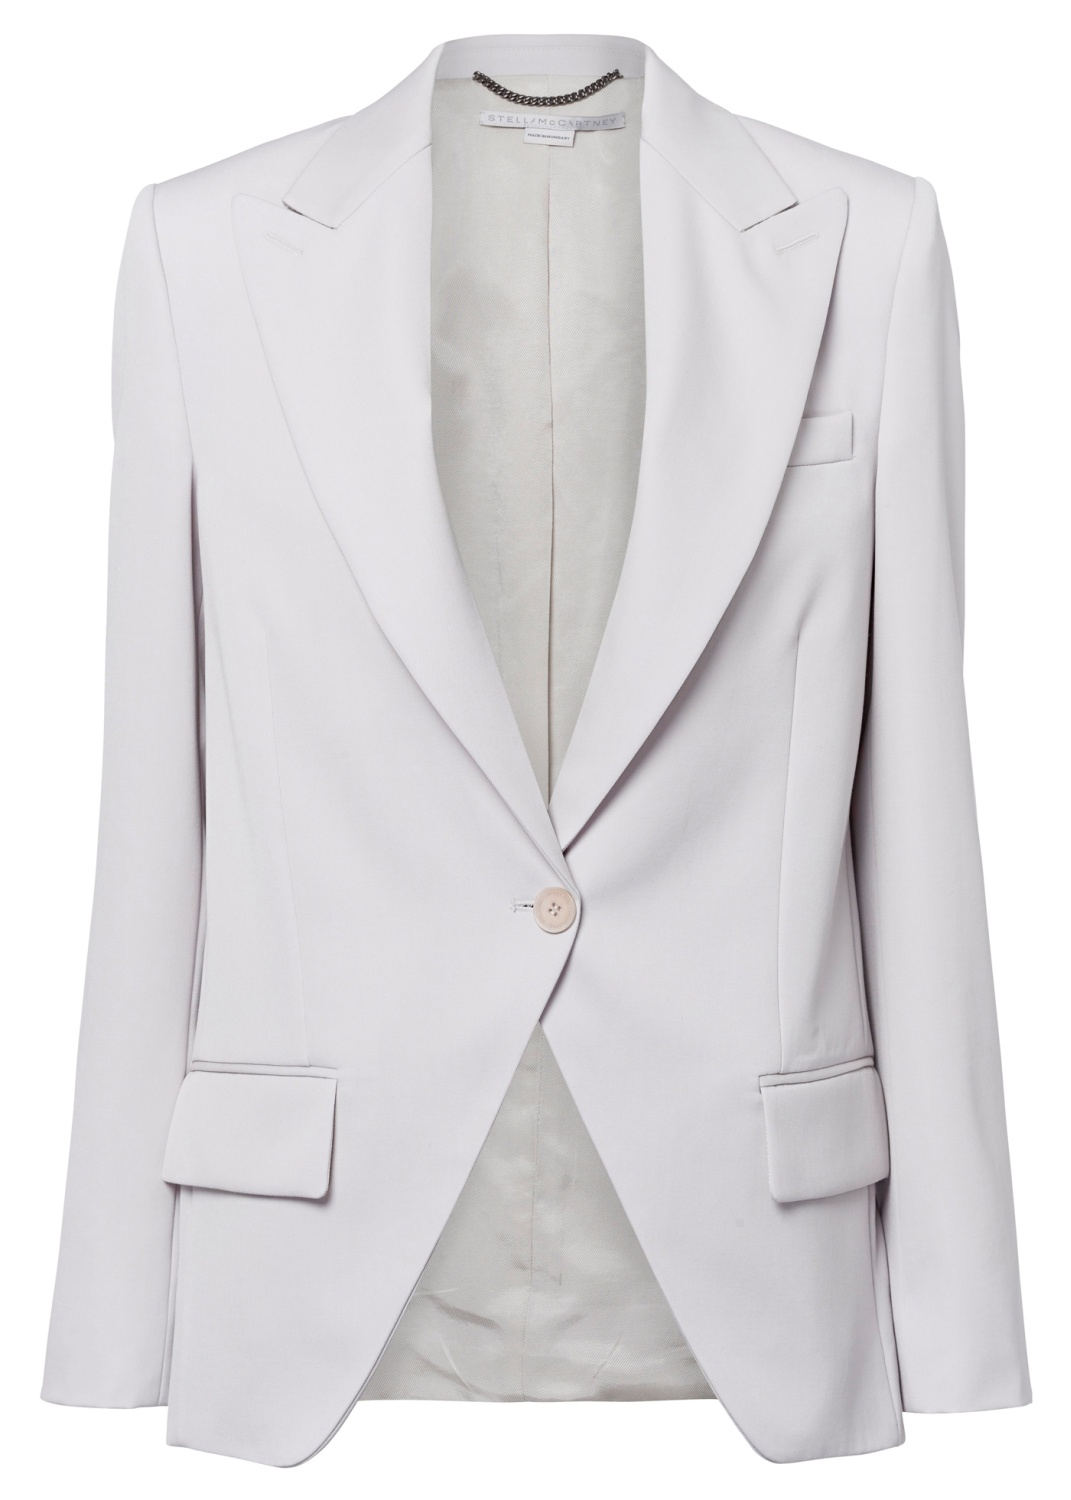 Lindsey Jacket Cm 72 Wool Twill Tailoring image number 0